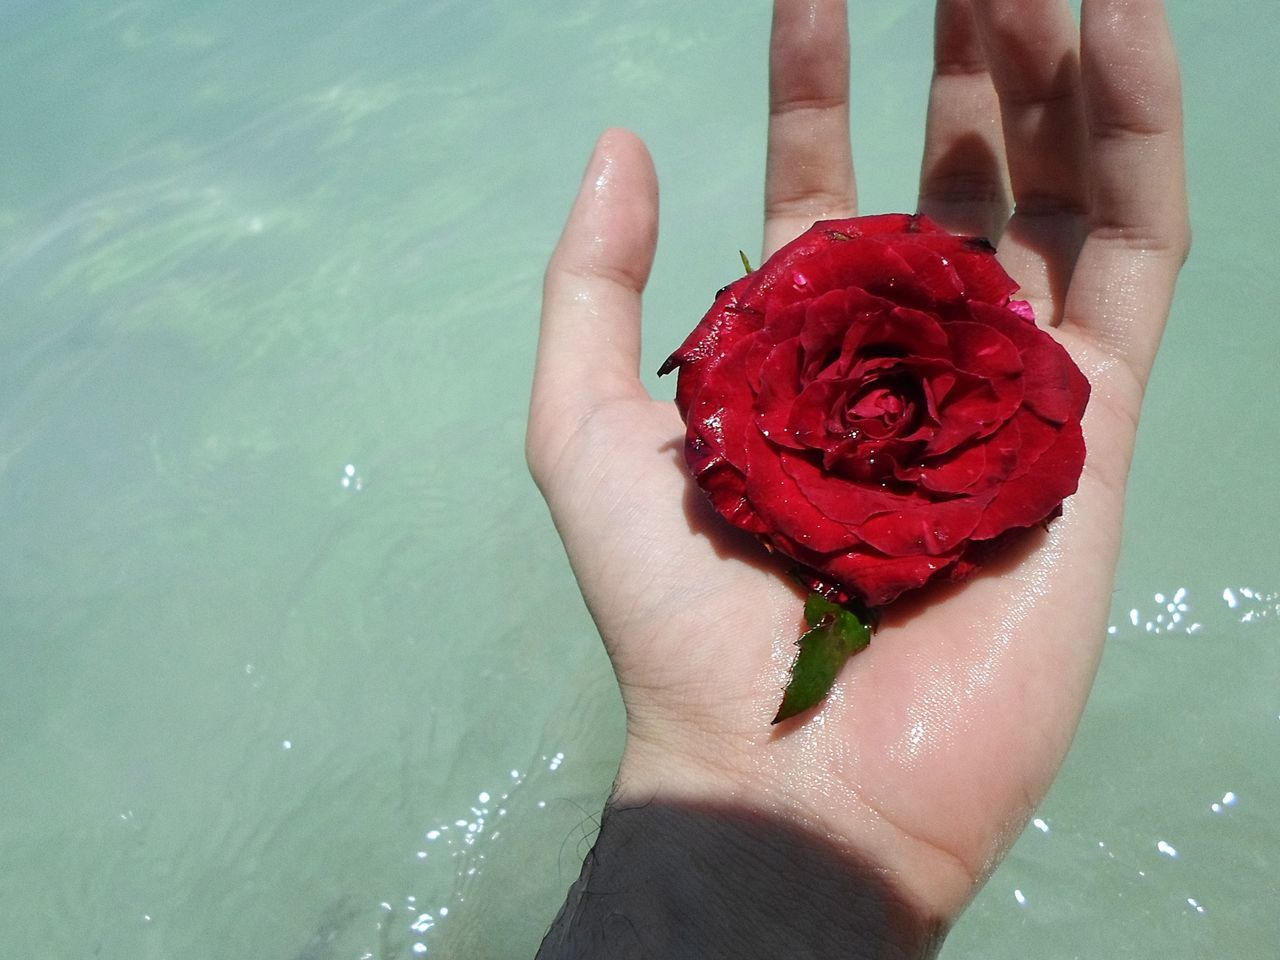 flower, water, rose - flower, red, one person, petal, beauty in nature, nature, real people, human body part, human hand, close-up, day, freshness, outdoors, fragility, women, flower head, people